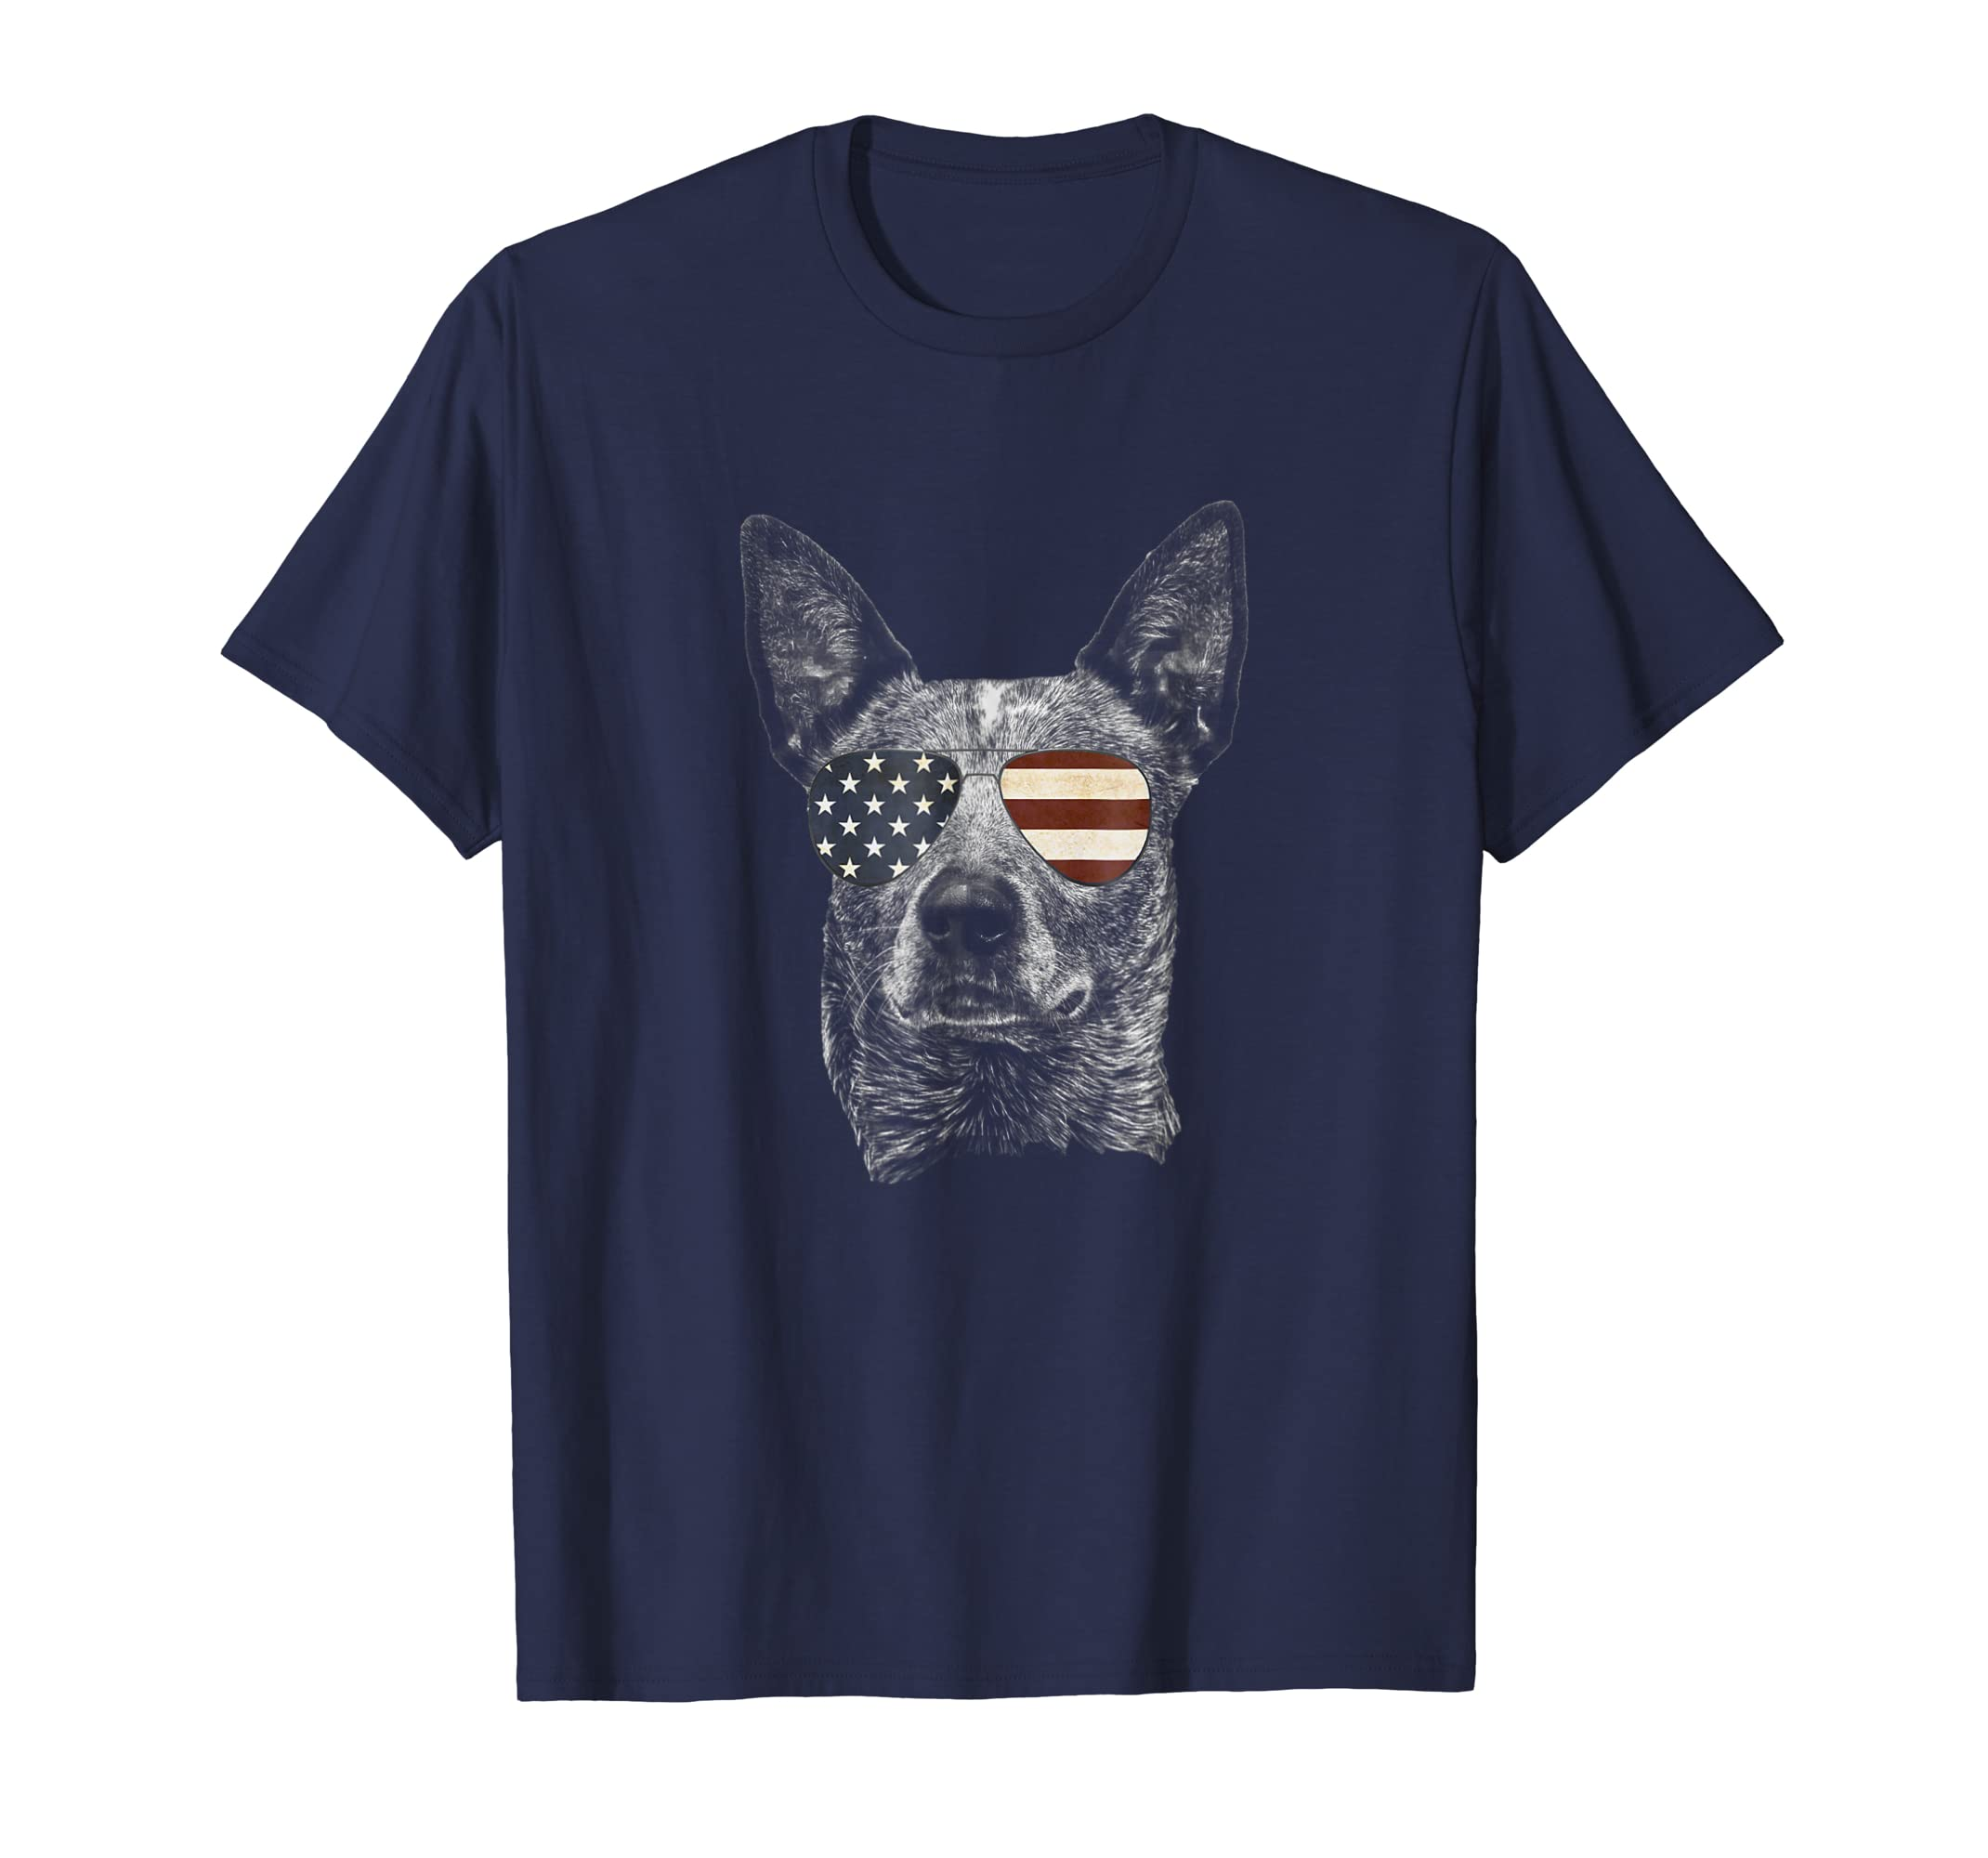 Australian Cattle Dog T-shirt with USA flag sunglasses-AZP